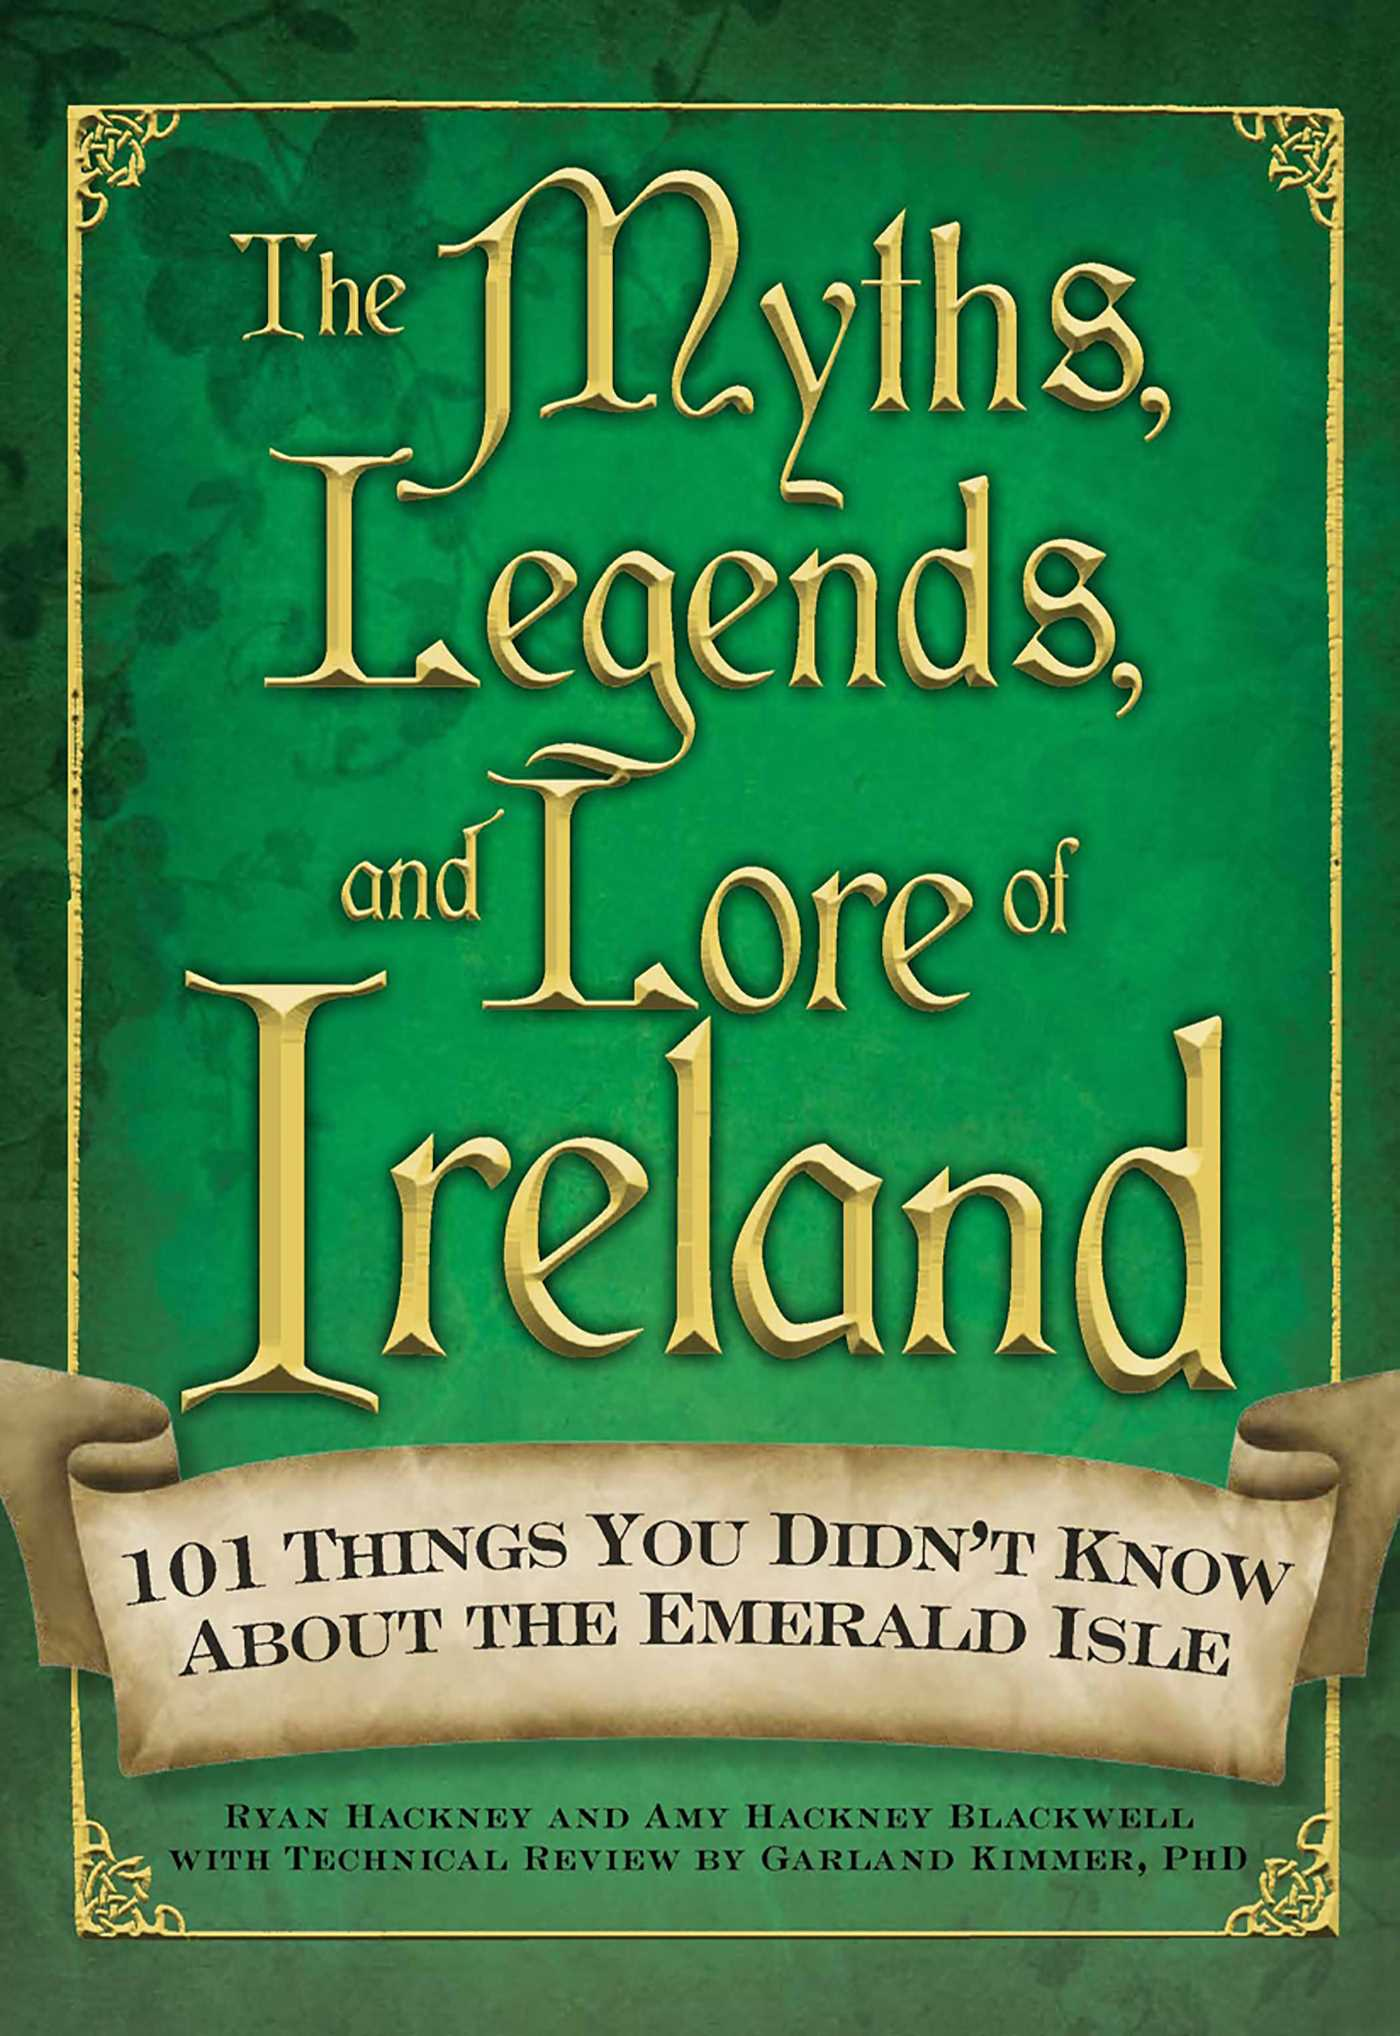 The myths legends and lore of ireland 9781440509247 hr